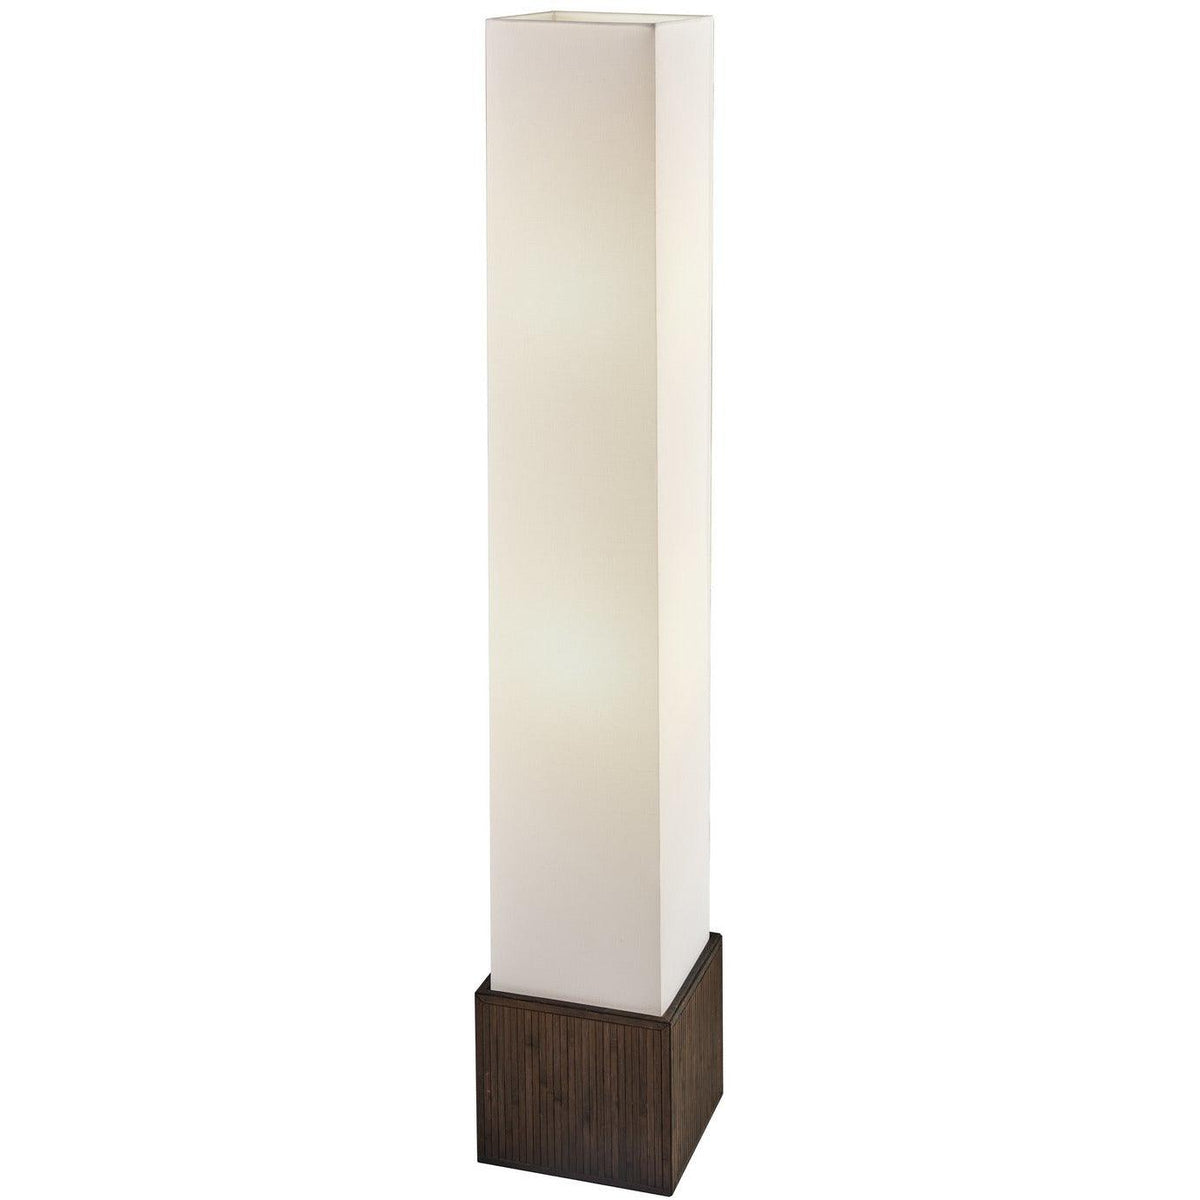 Adesso Home - 3004-14 - Two Light Floor Lamp - Sebu - Teak brown finish bamboo